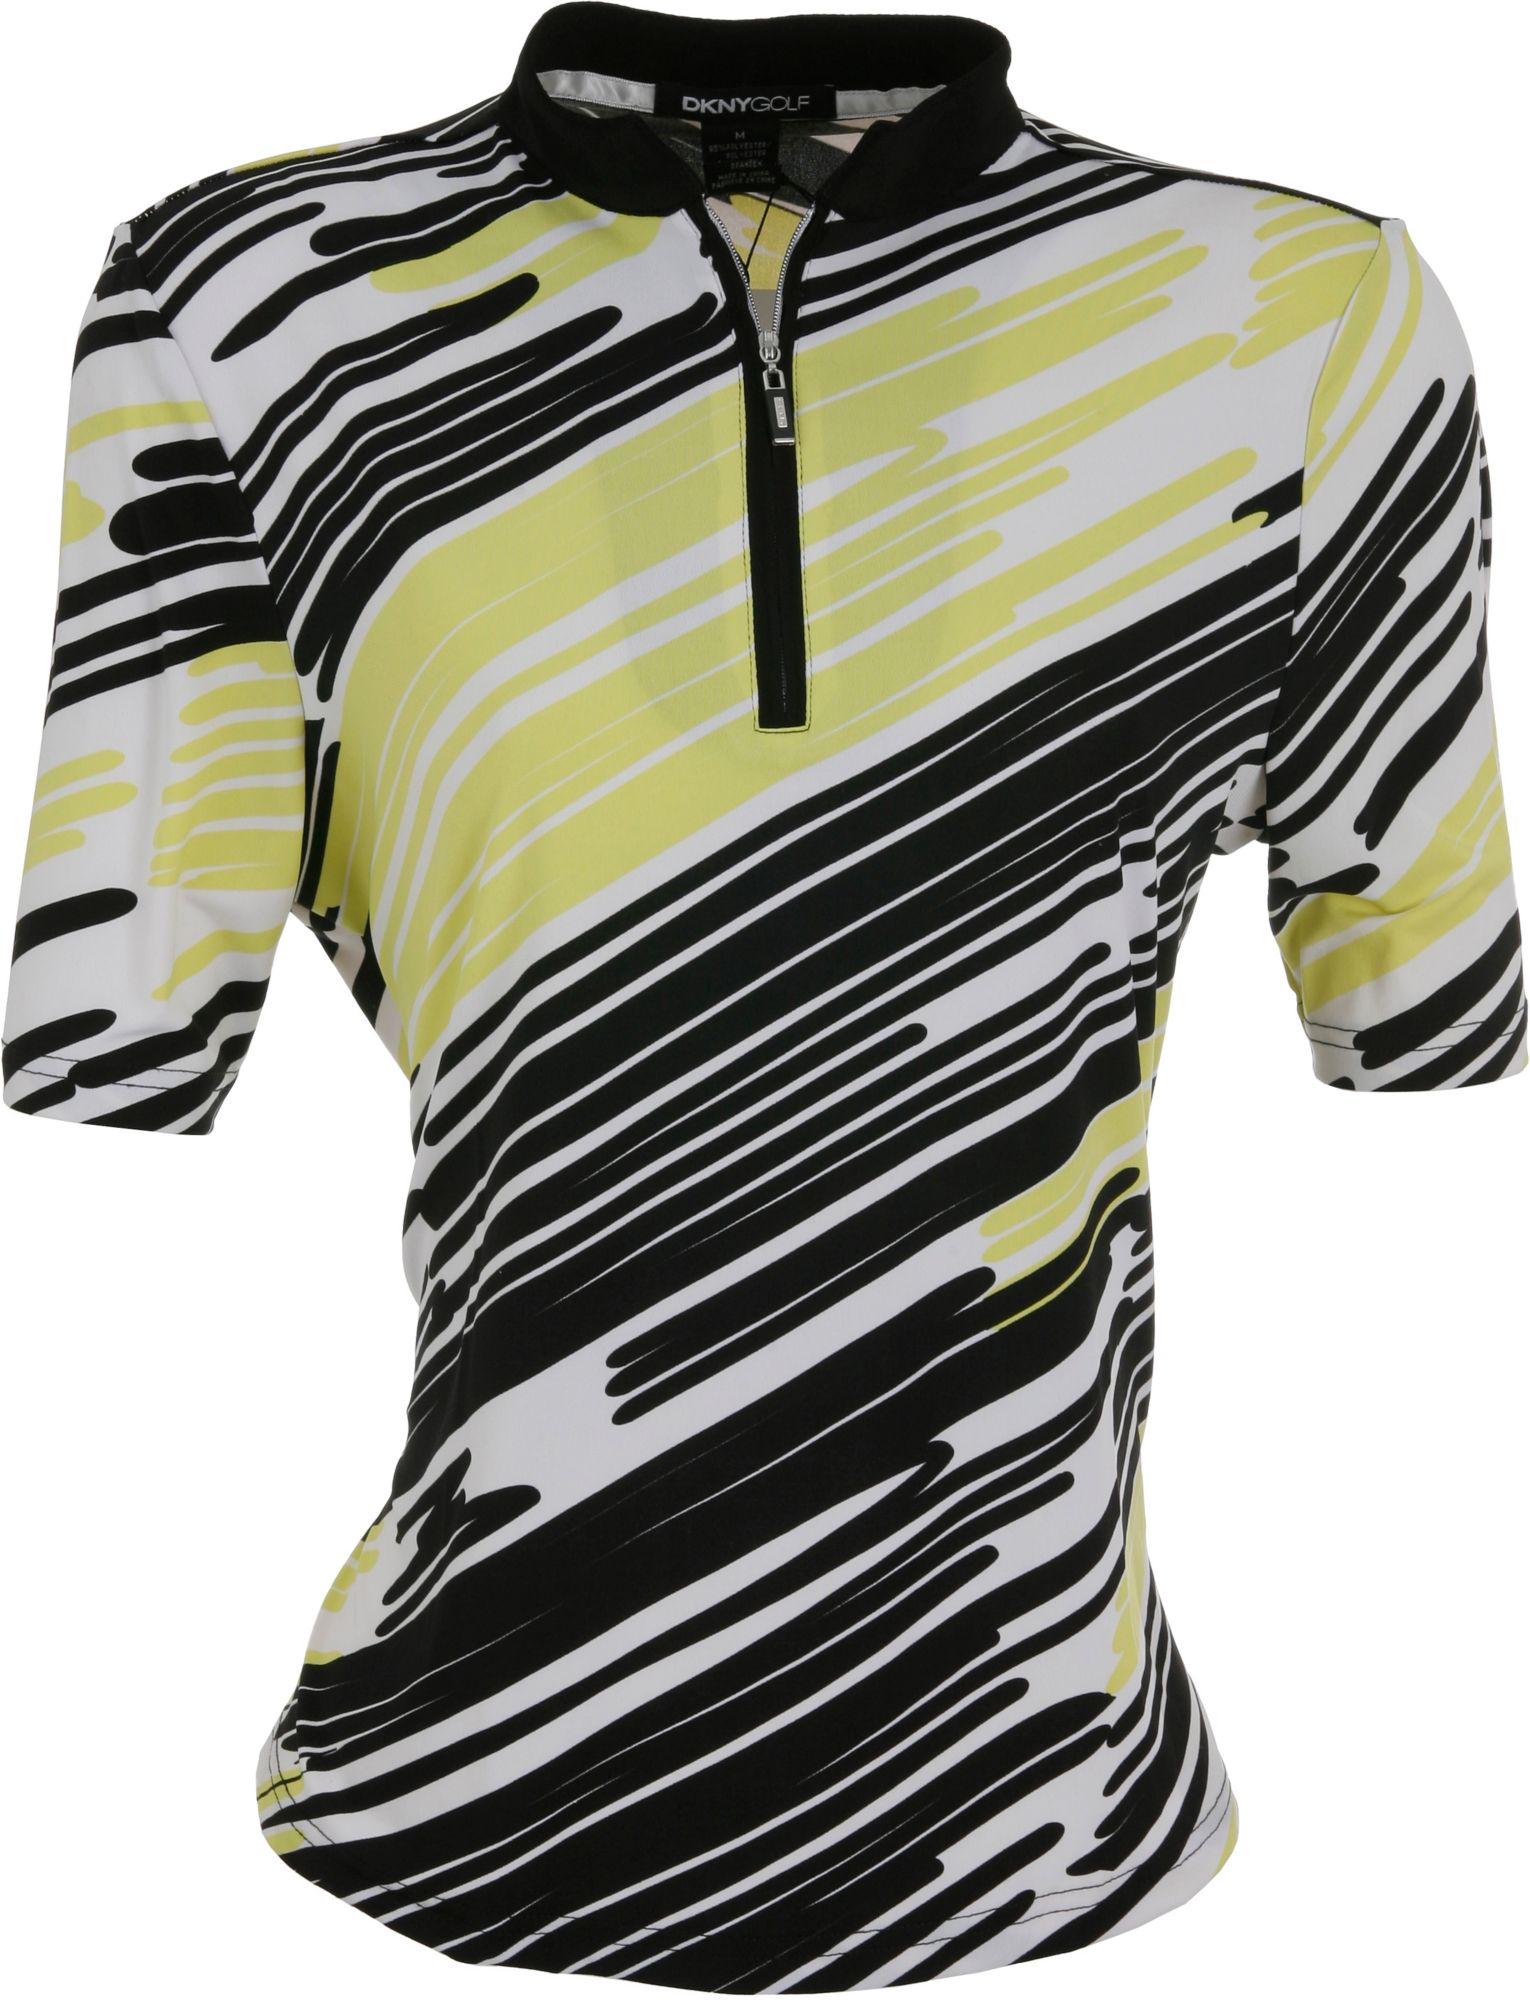 DKNY Women's Abstract Pattern Citrine ½ Sleeve Shirt